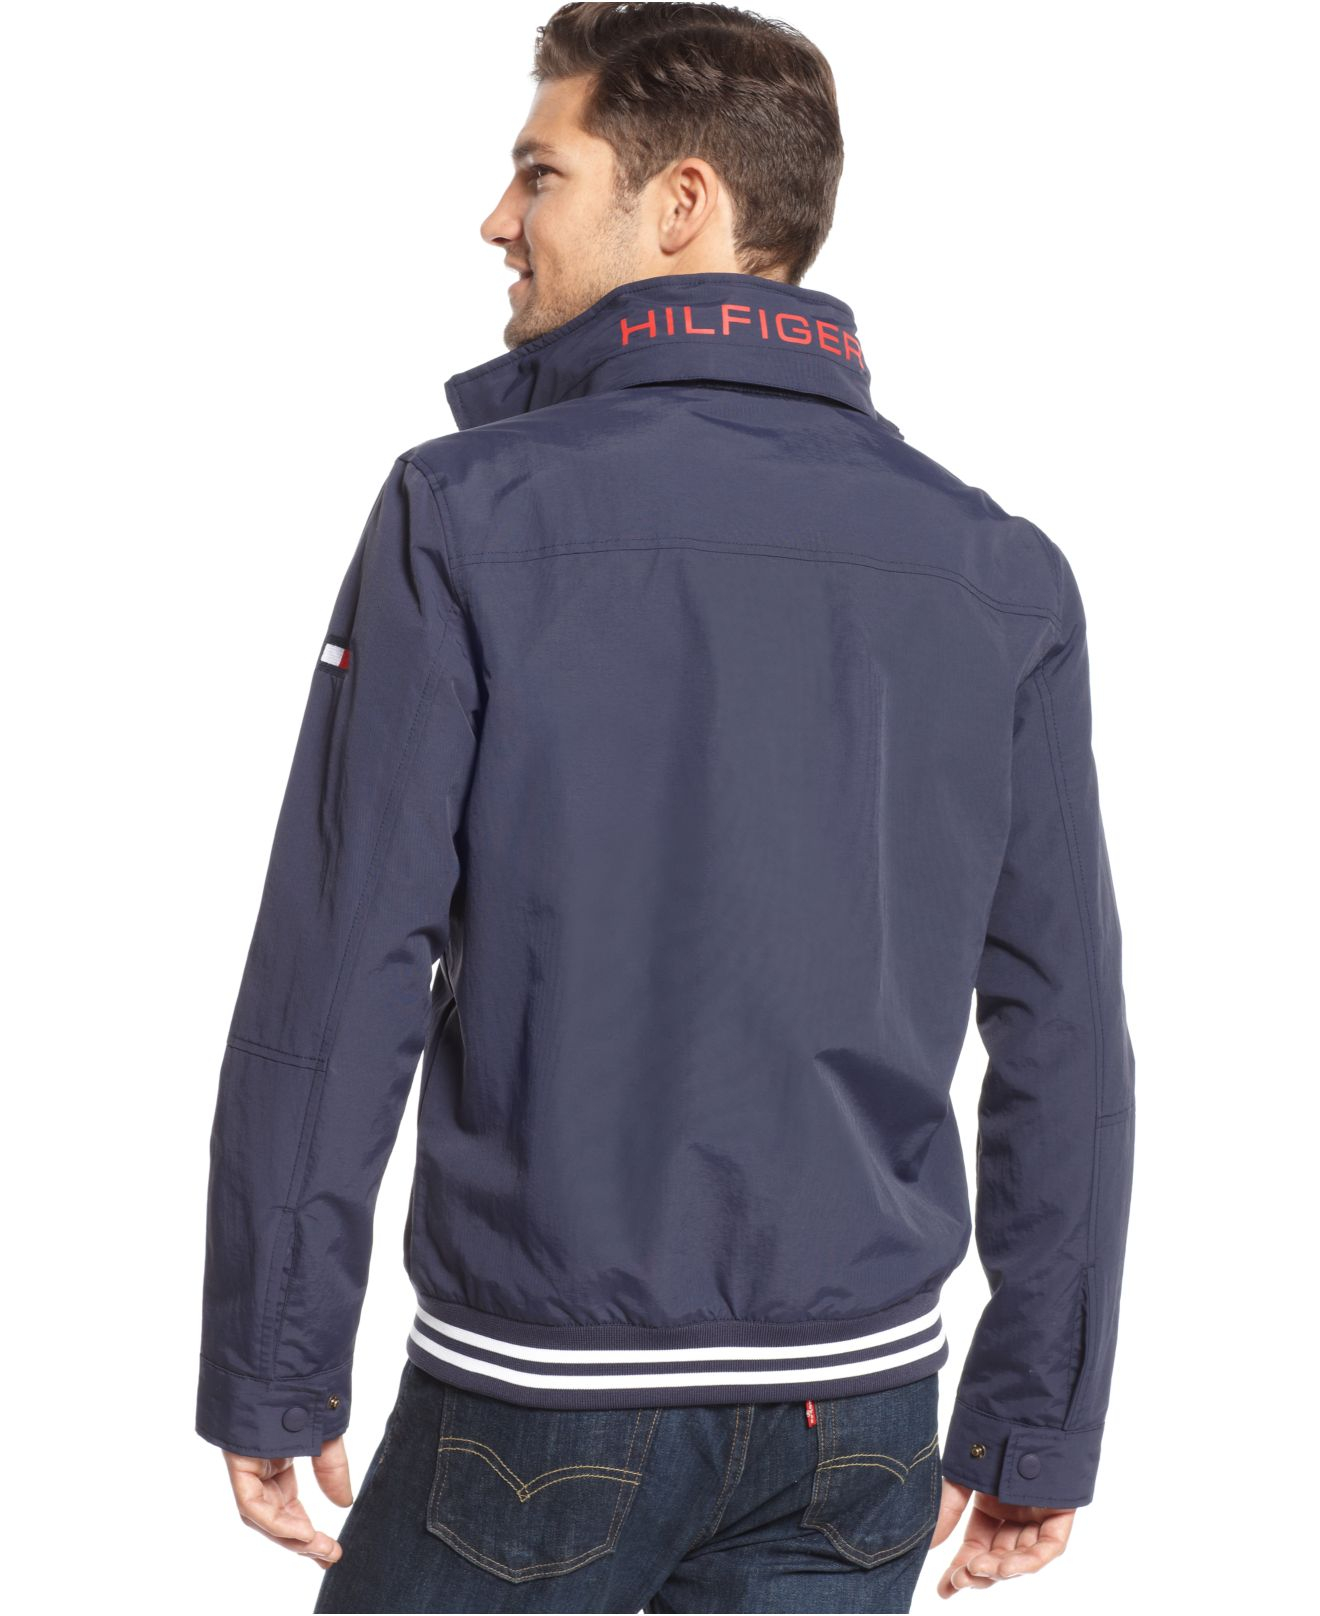 tommy hilfiger core regatta jacket in blue for men lyst. Black Bedroom Furniture Sets. Home Design Ideas